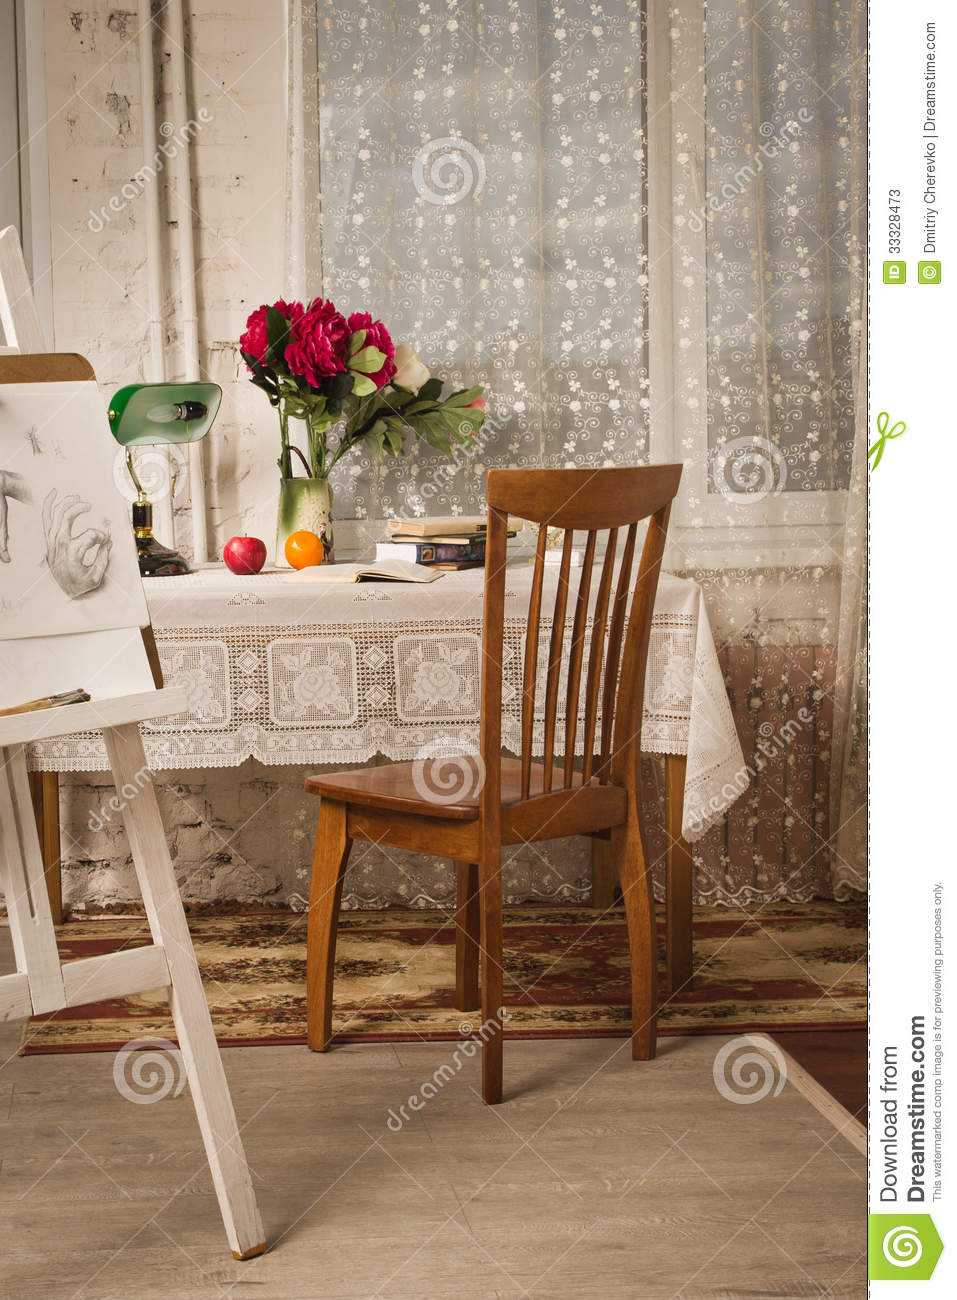 Vintage living room with old fashioned table and chair - Vintage Living Room With Old Fashioned Table And Chair Stock Image